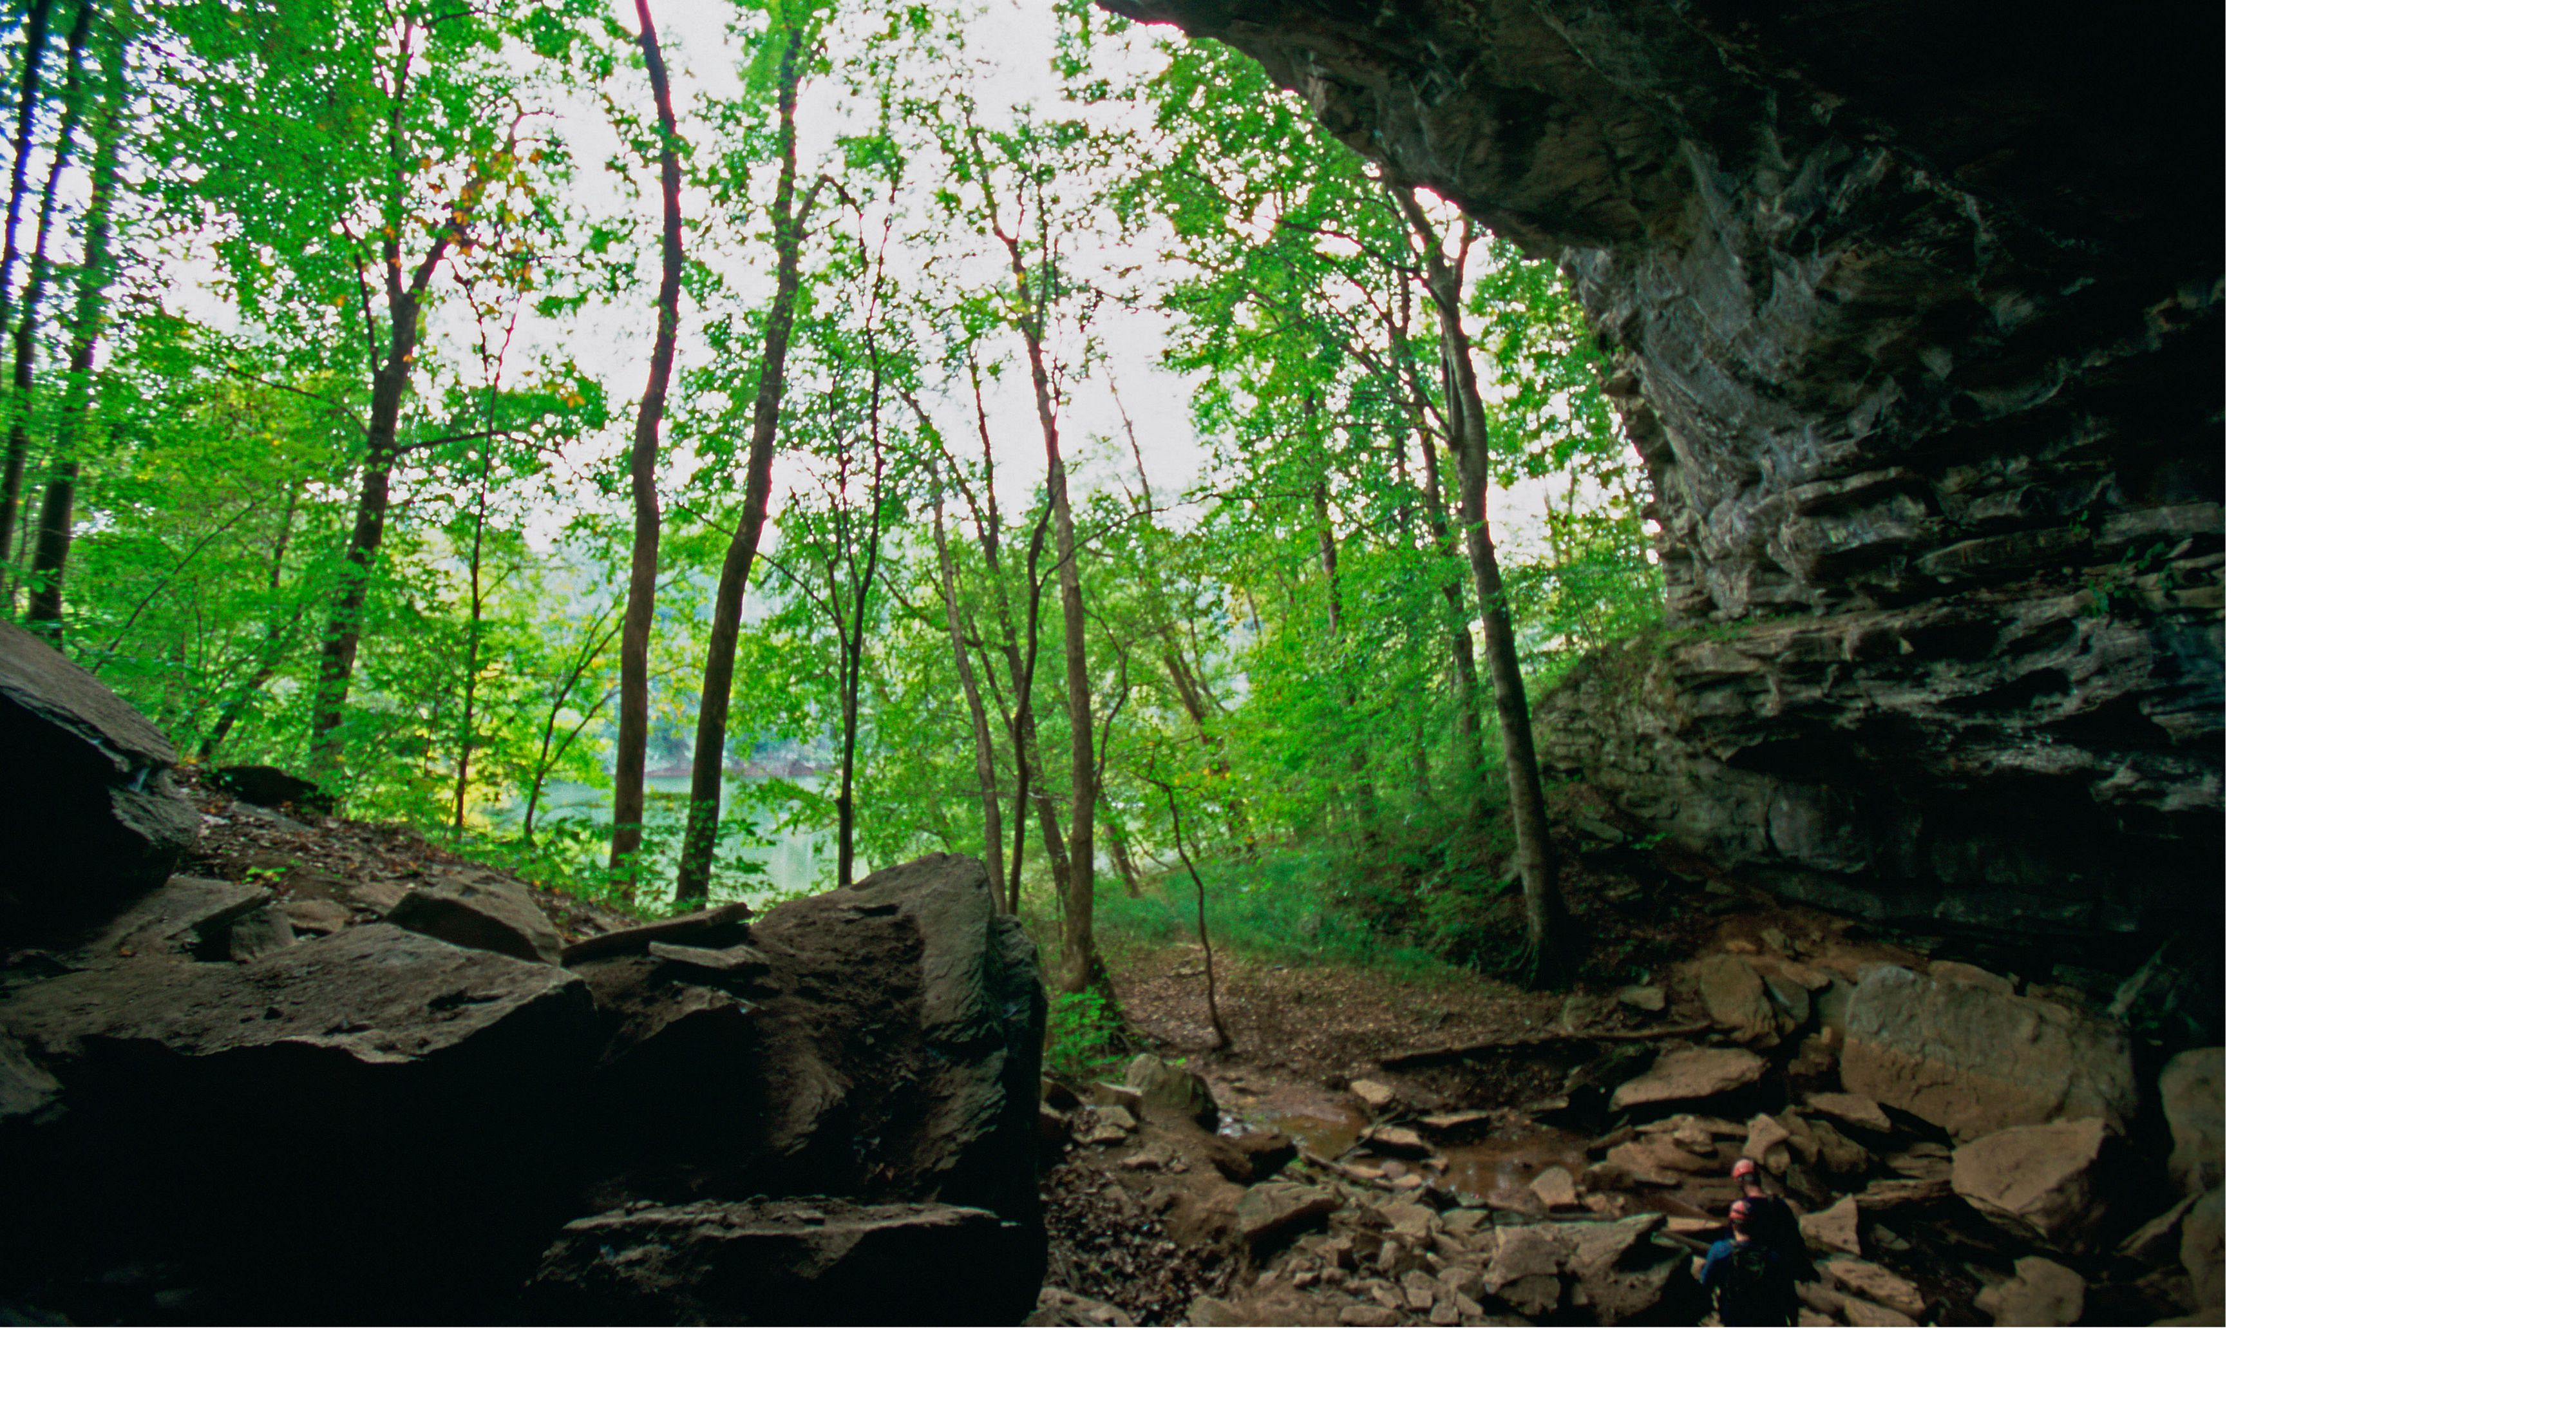 View from inside a Tennessee cave.